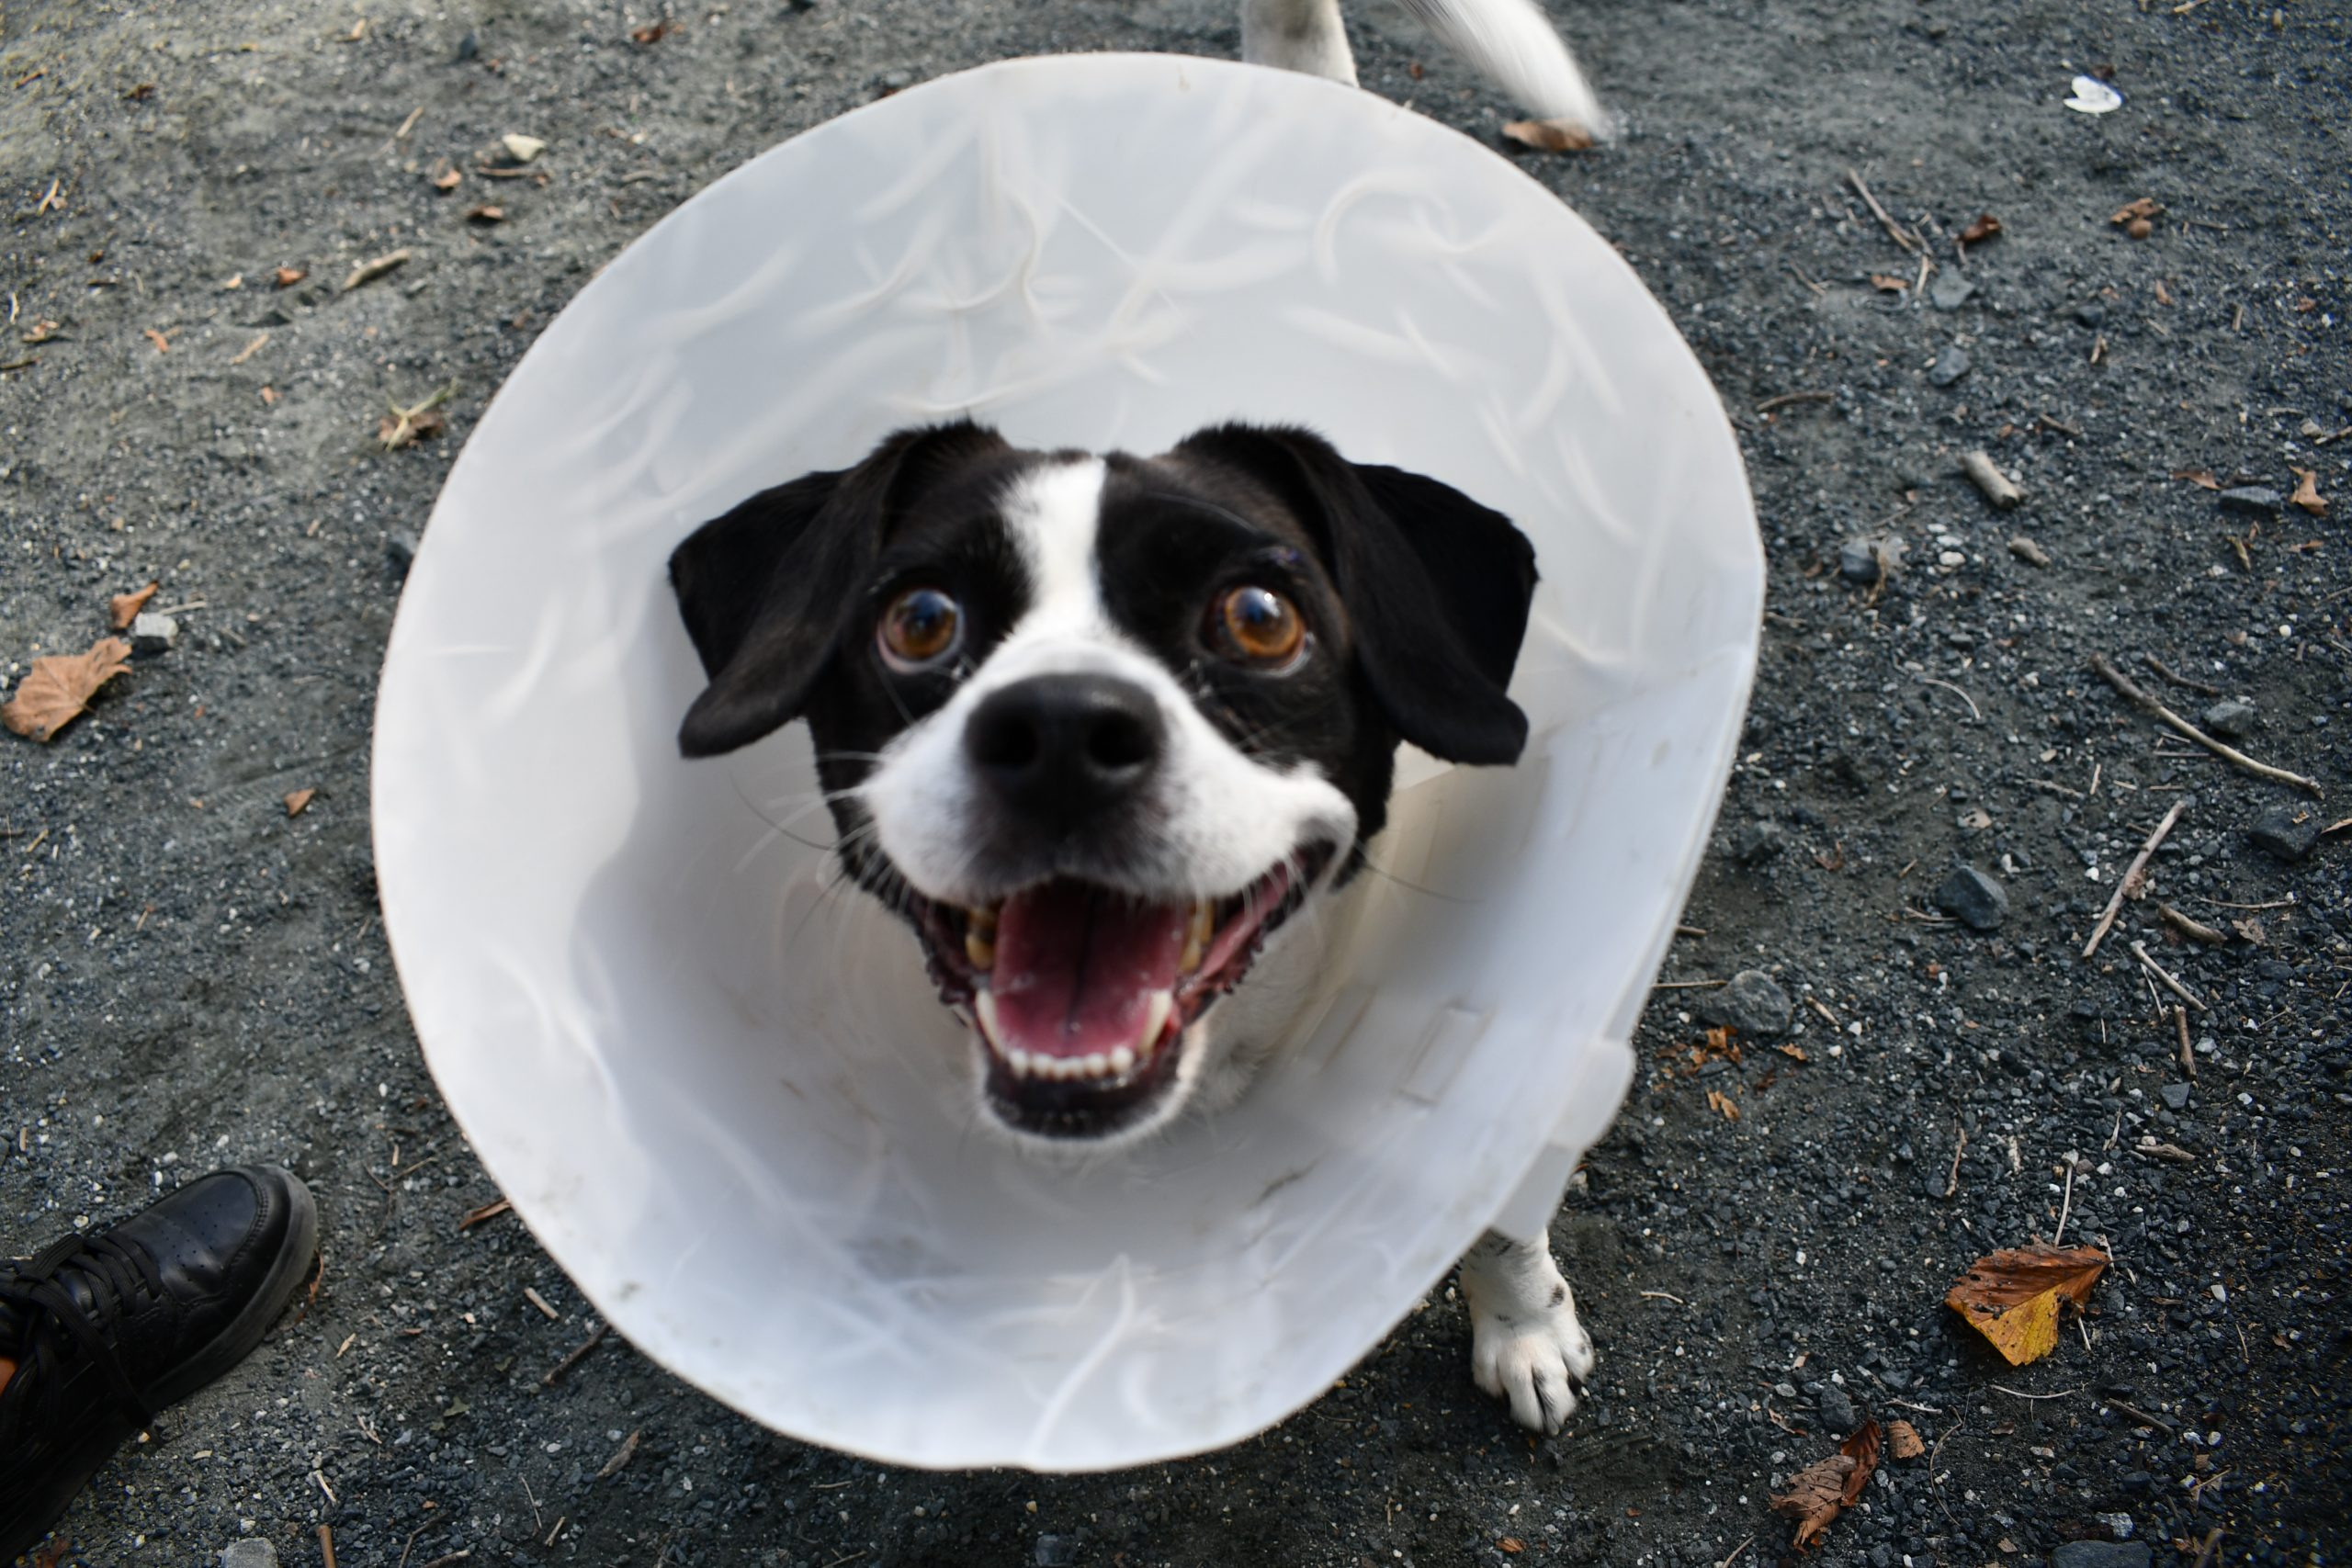 MooMoo, a black and white rat terrier mix, wears the cone of shame at the Takoma Park Dog Park while smiling up at the camera.